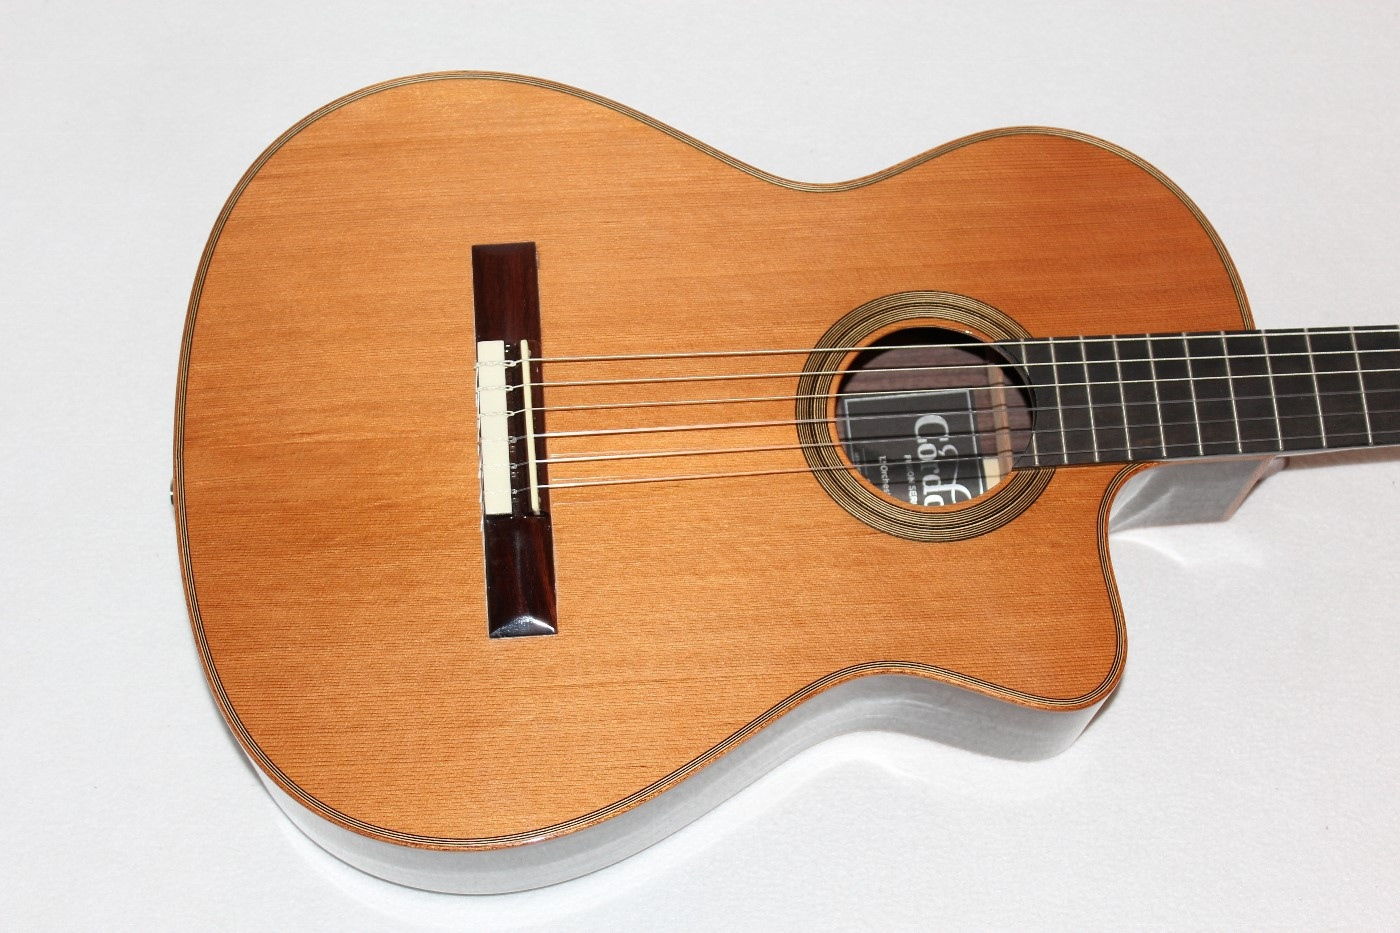 cordoba fusion orchestra ce cd in acoustic electric classical guitar w bag ebay. Black Bedroom Furniture Sets. Home Design Ideas